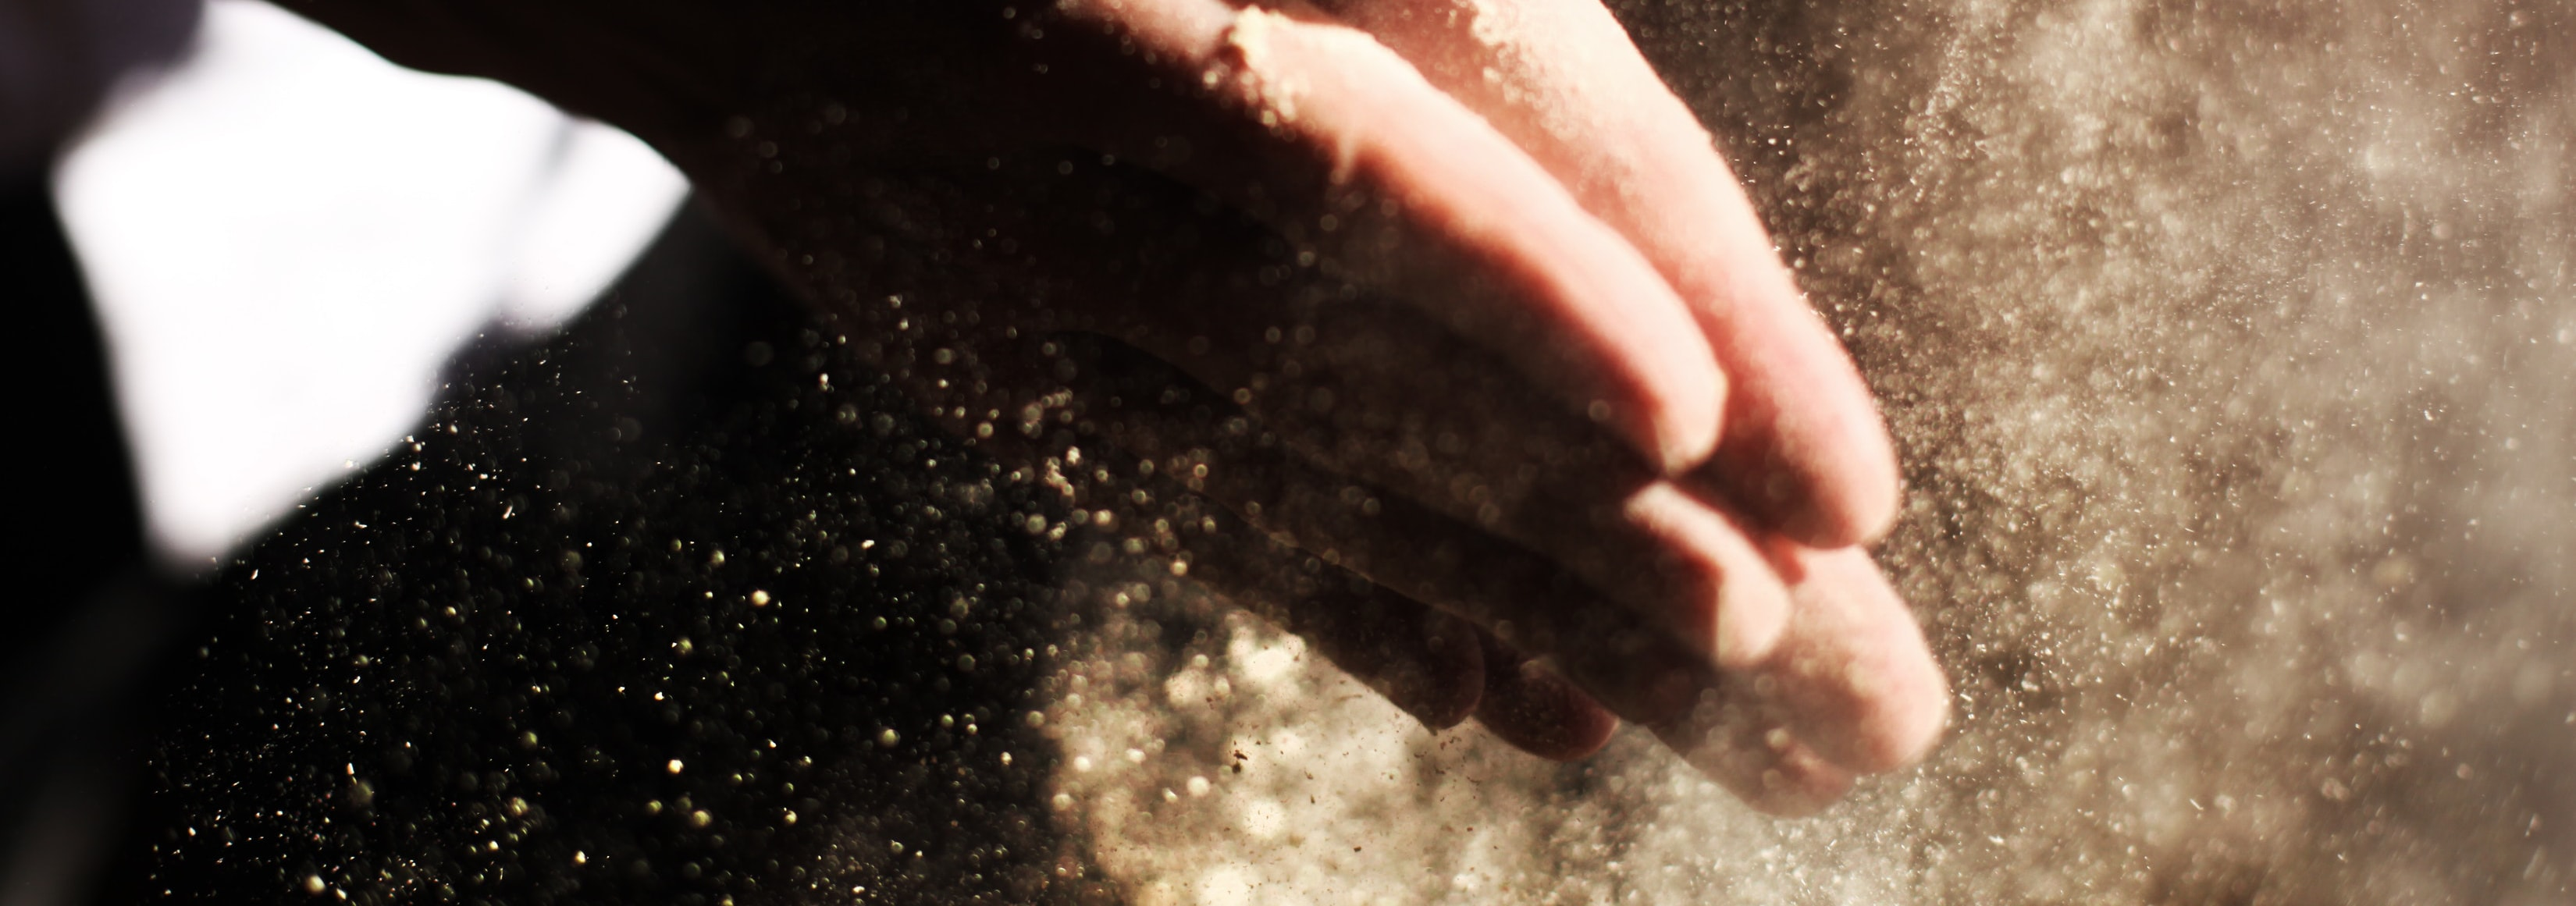 Flour Dust Exposure - The Complete Guide